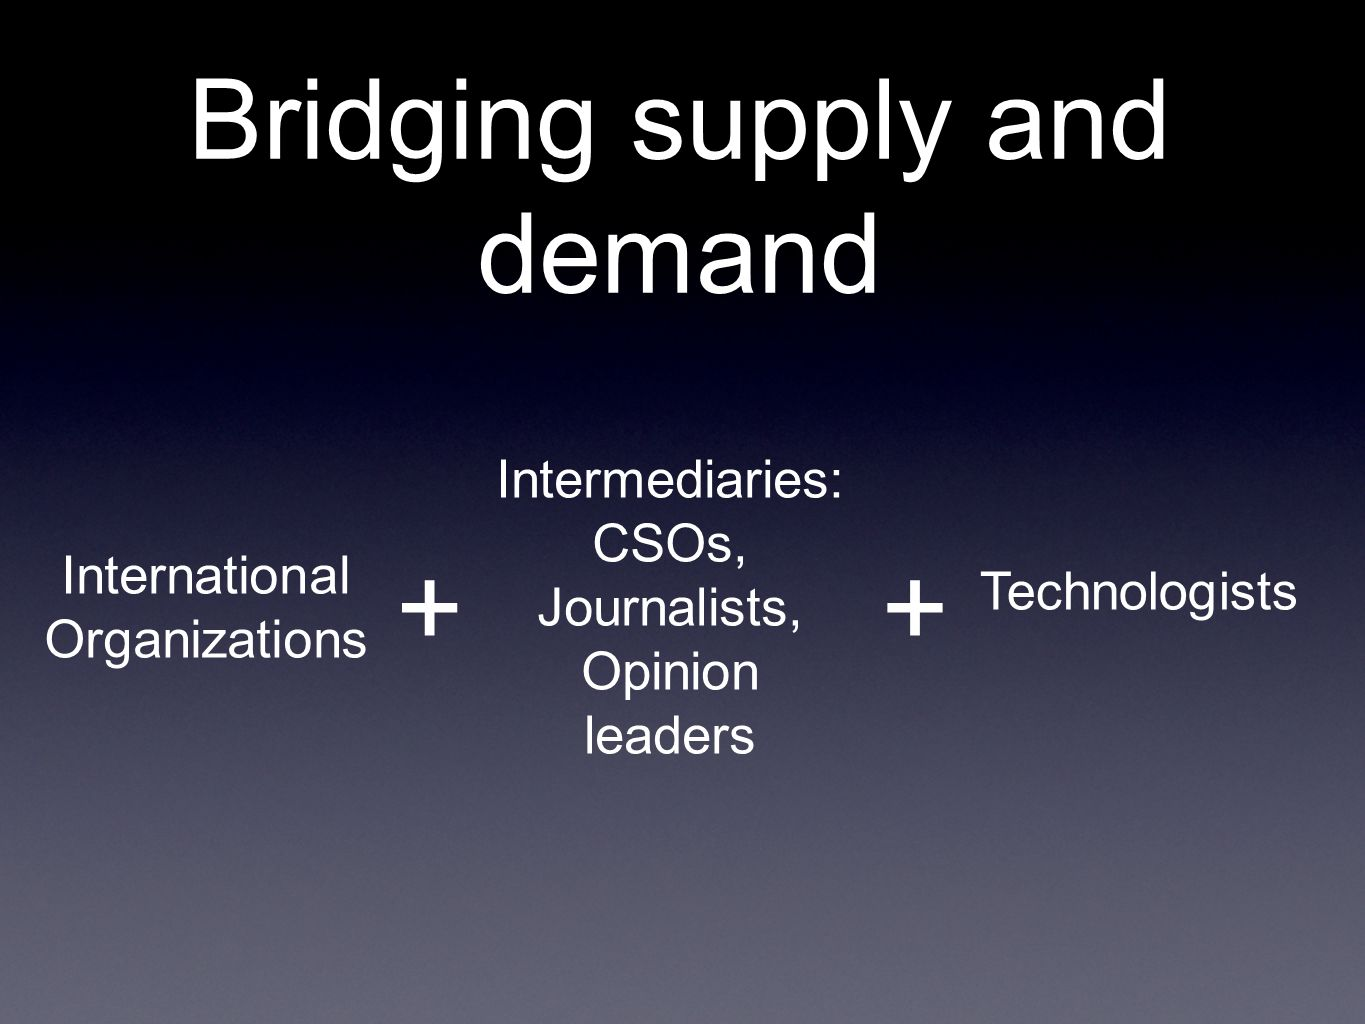 International Organizations + Intermediaries: CSOs, Journalists, Opinion leaders + Technologists Bridging supply and demand